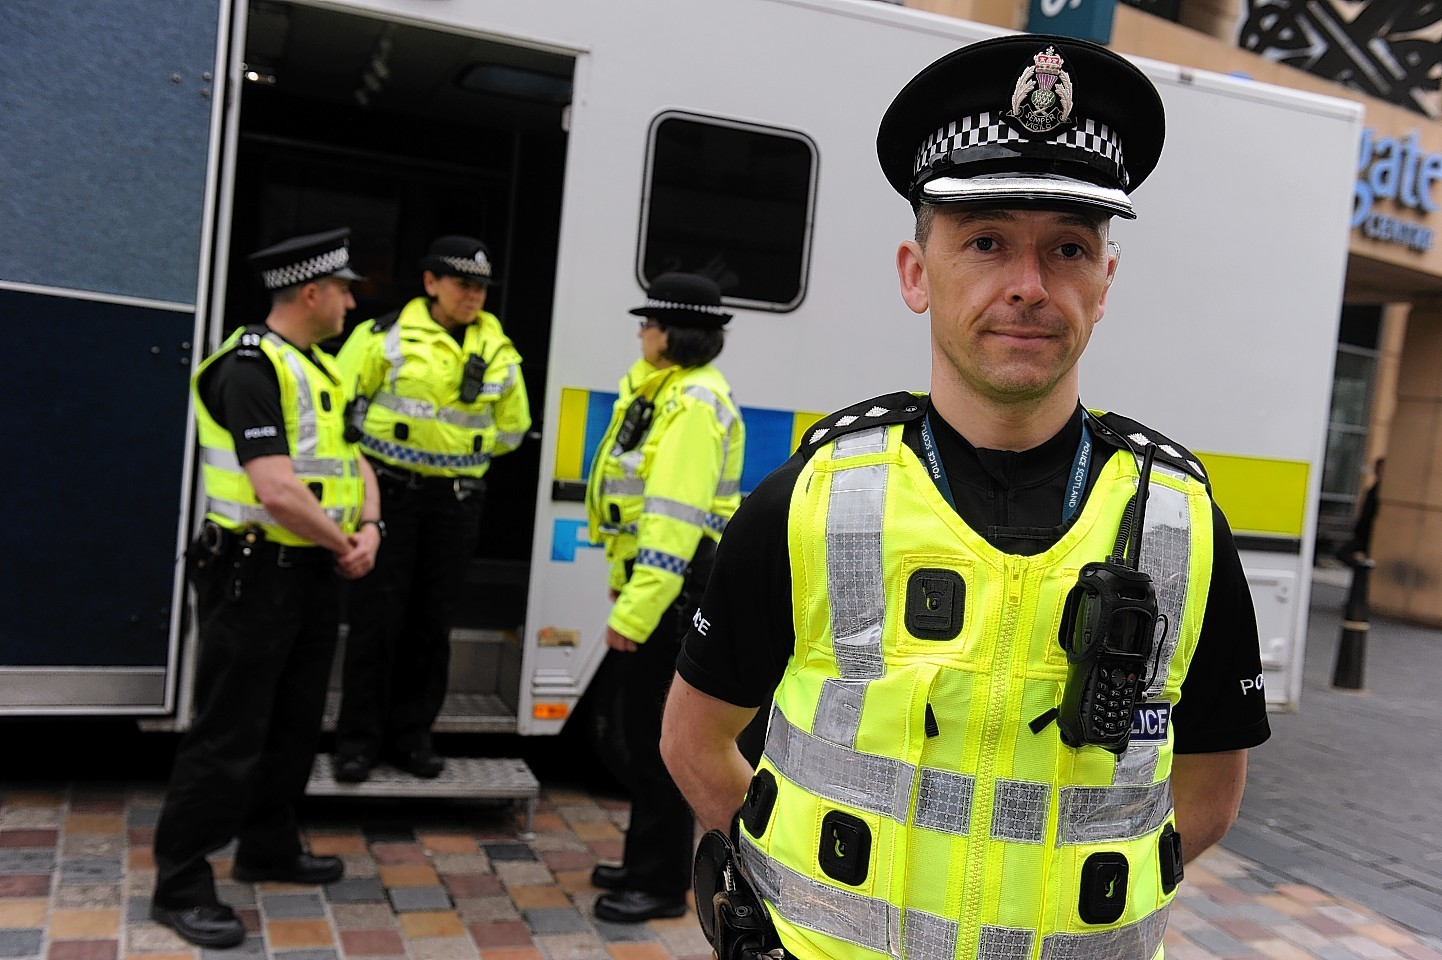 A new mobile police station is set for Inverness